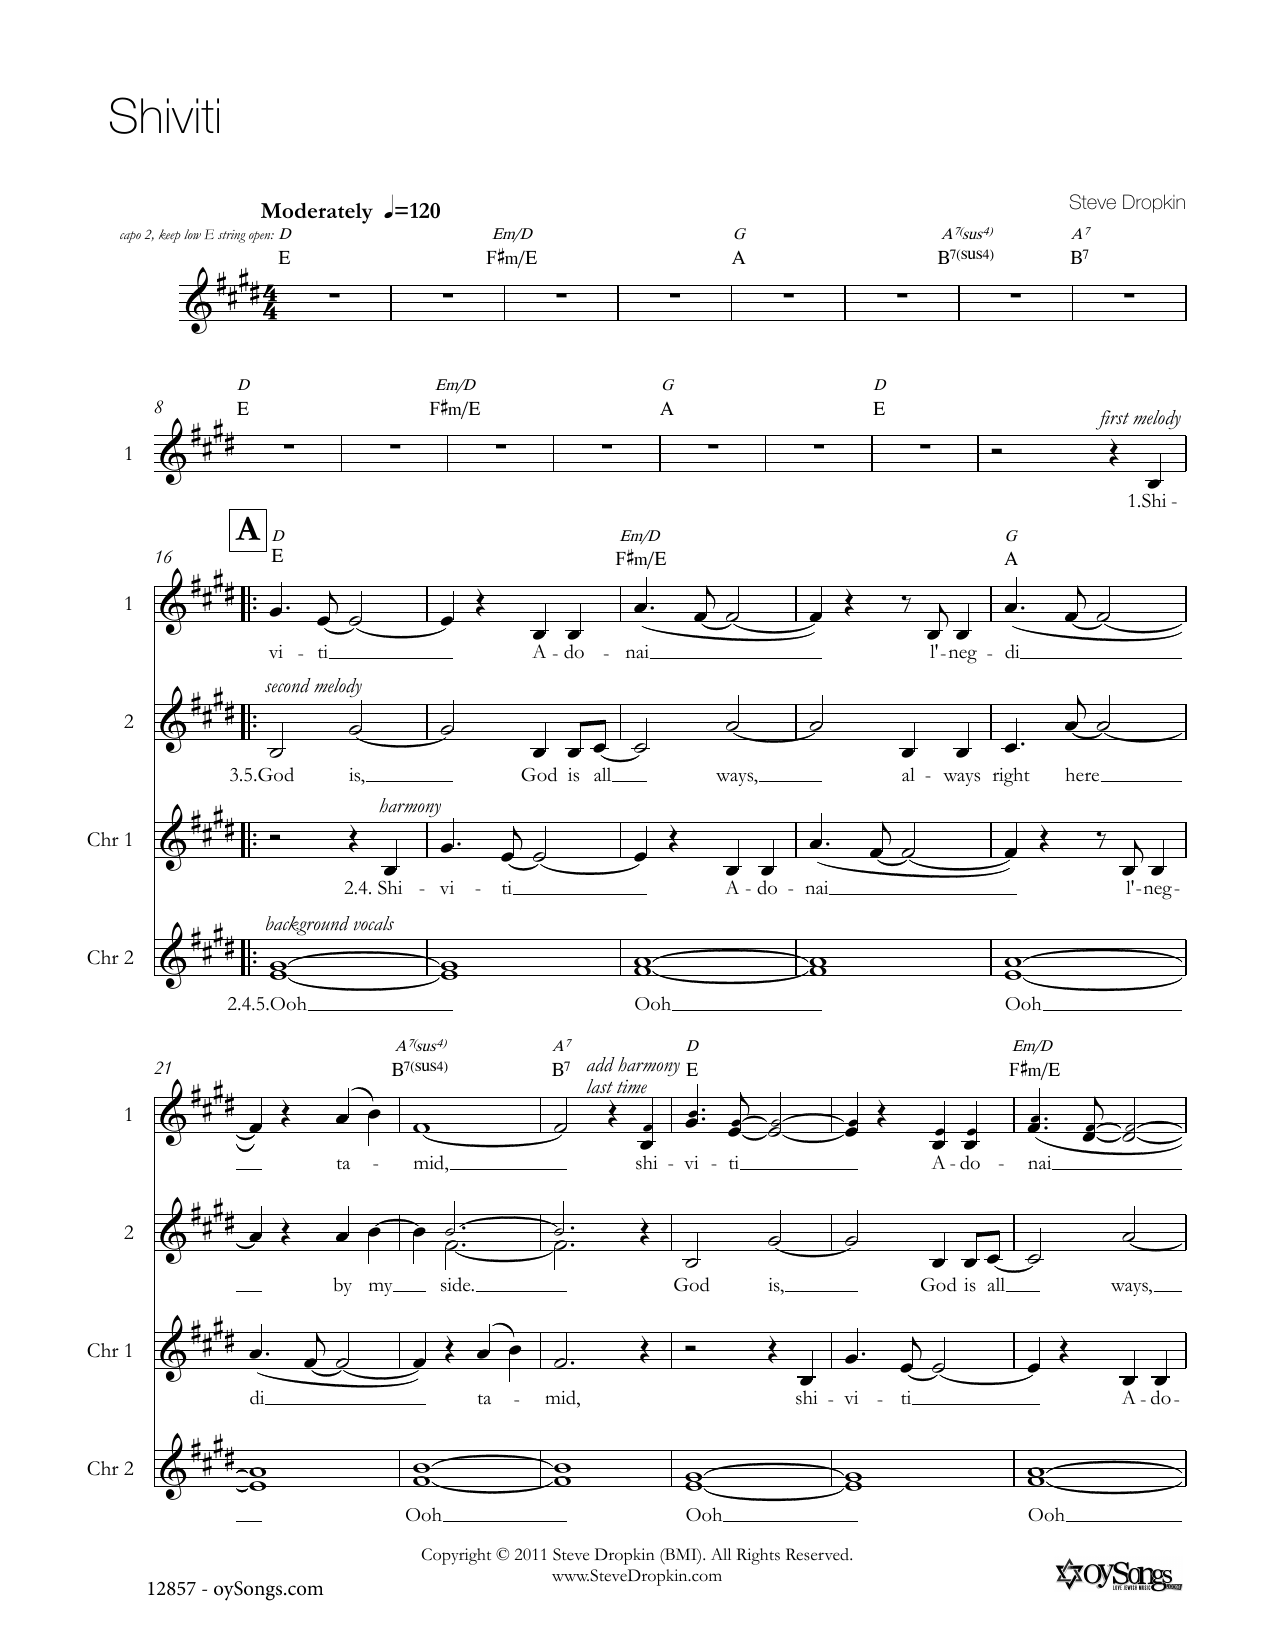 Shiviti Sheet Music